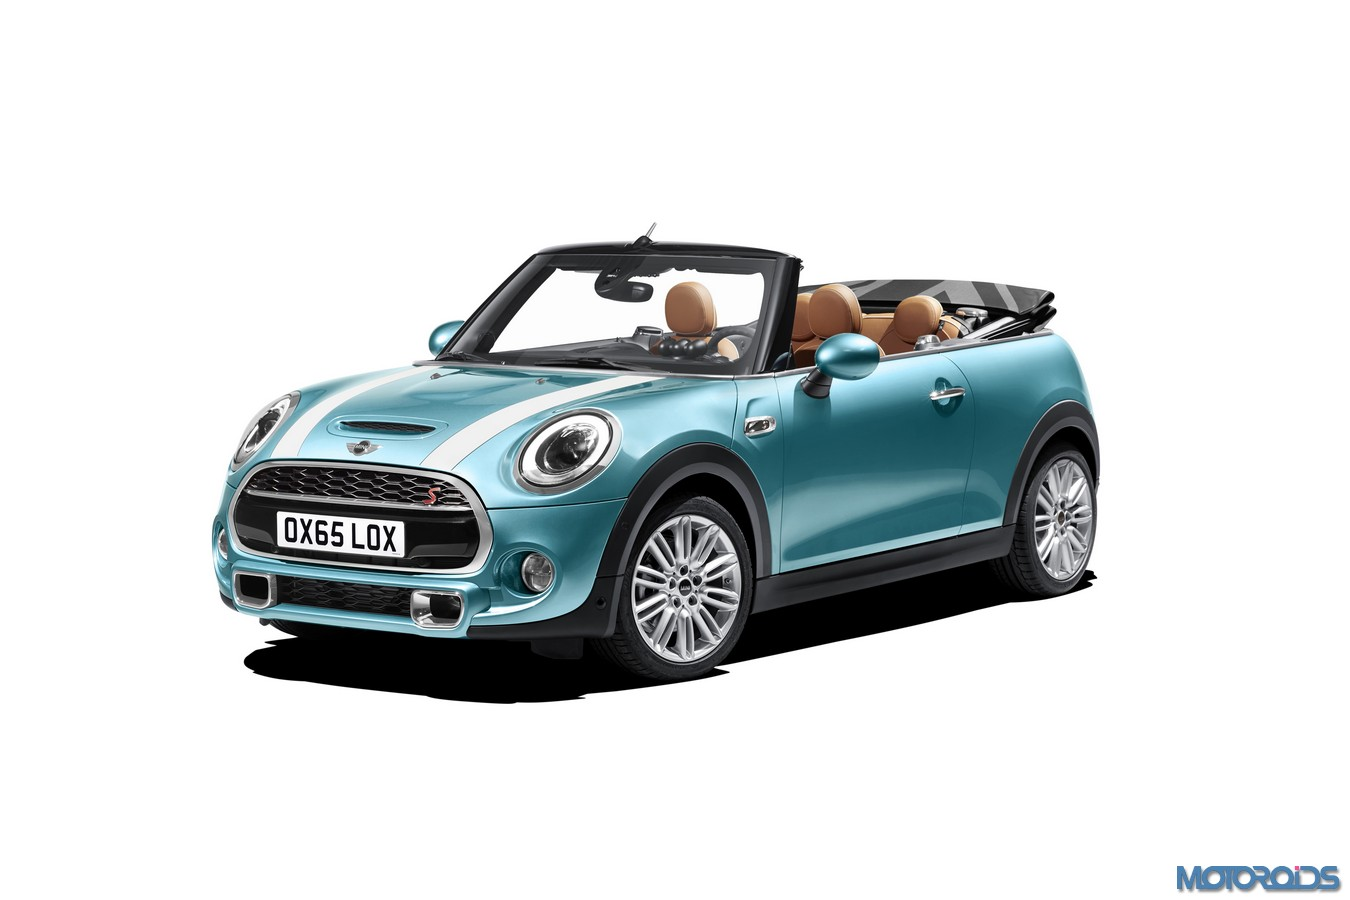 the new 2016 mini convertible revealed images and all the details motoroids. Black Bedroom Furniture Sets. Home Design Ideas